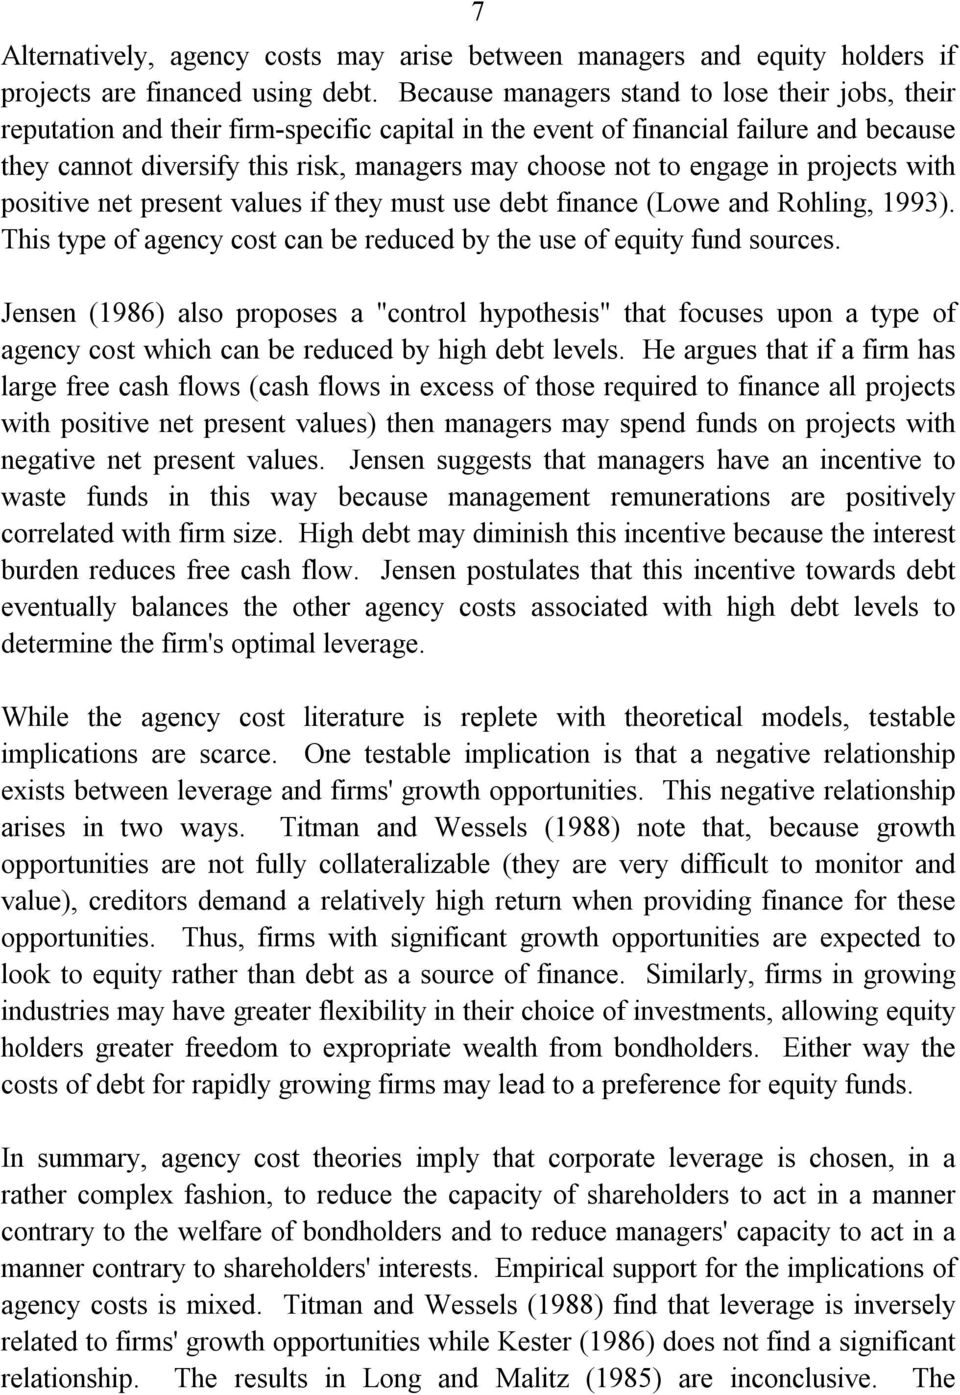 engage in projects with positive net present values if they must use debt finance (Lowe and Rohling, 1993). This type of agency cost can be reduced by the use of equity fund sources.